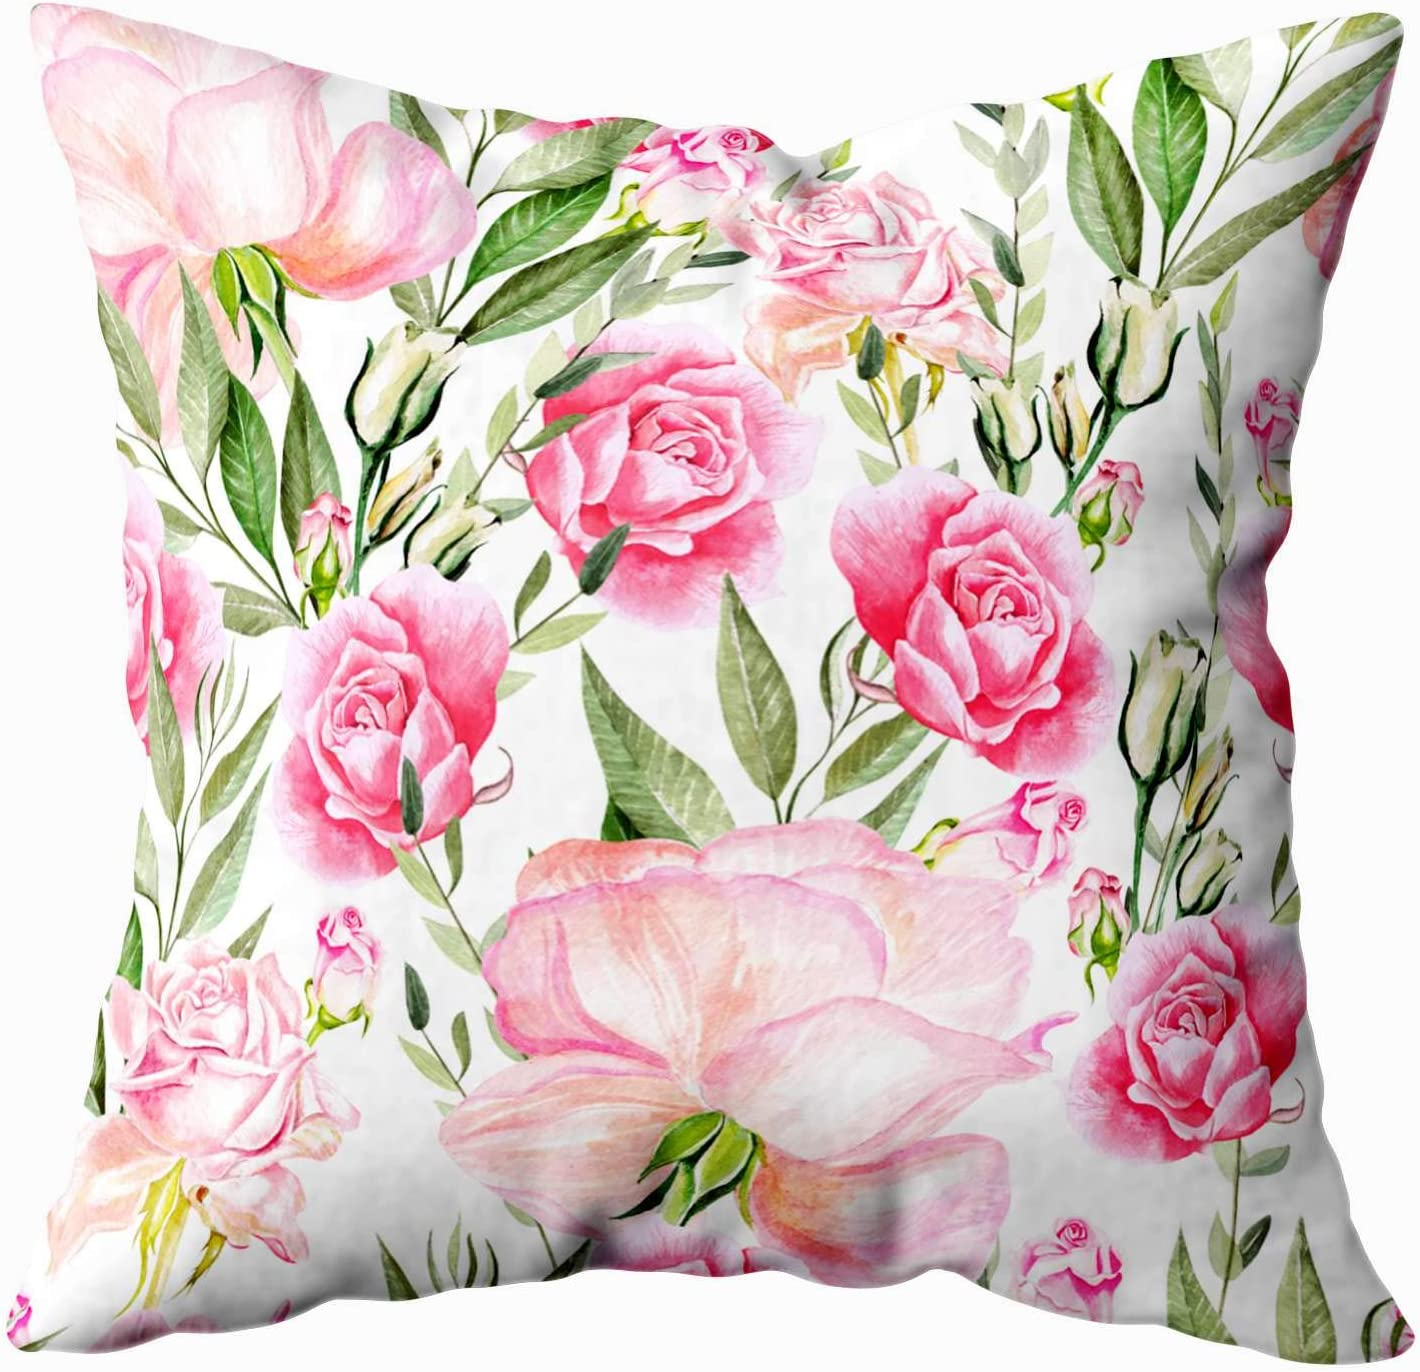 Amazon Com Douecish Gold Accent Pillows Beautiful Bright Watercolor Pattern Roses Throw Pillow Covers Cushion Soft Home Sofa Decorative Throw Pillow Cases Home Kitchen